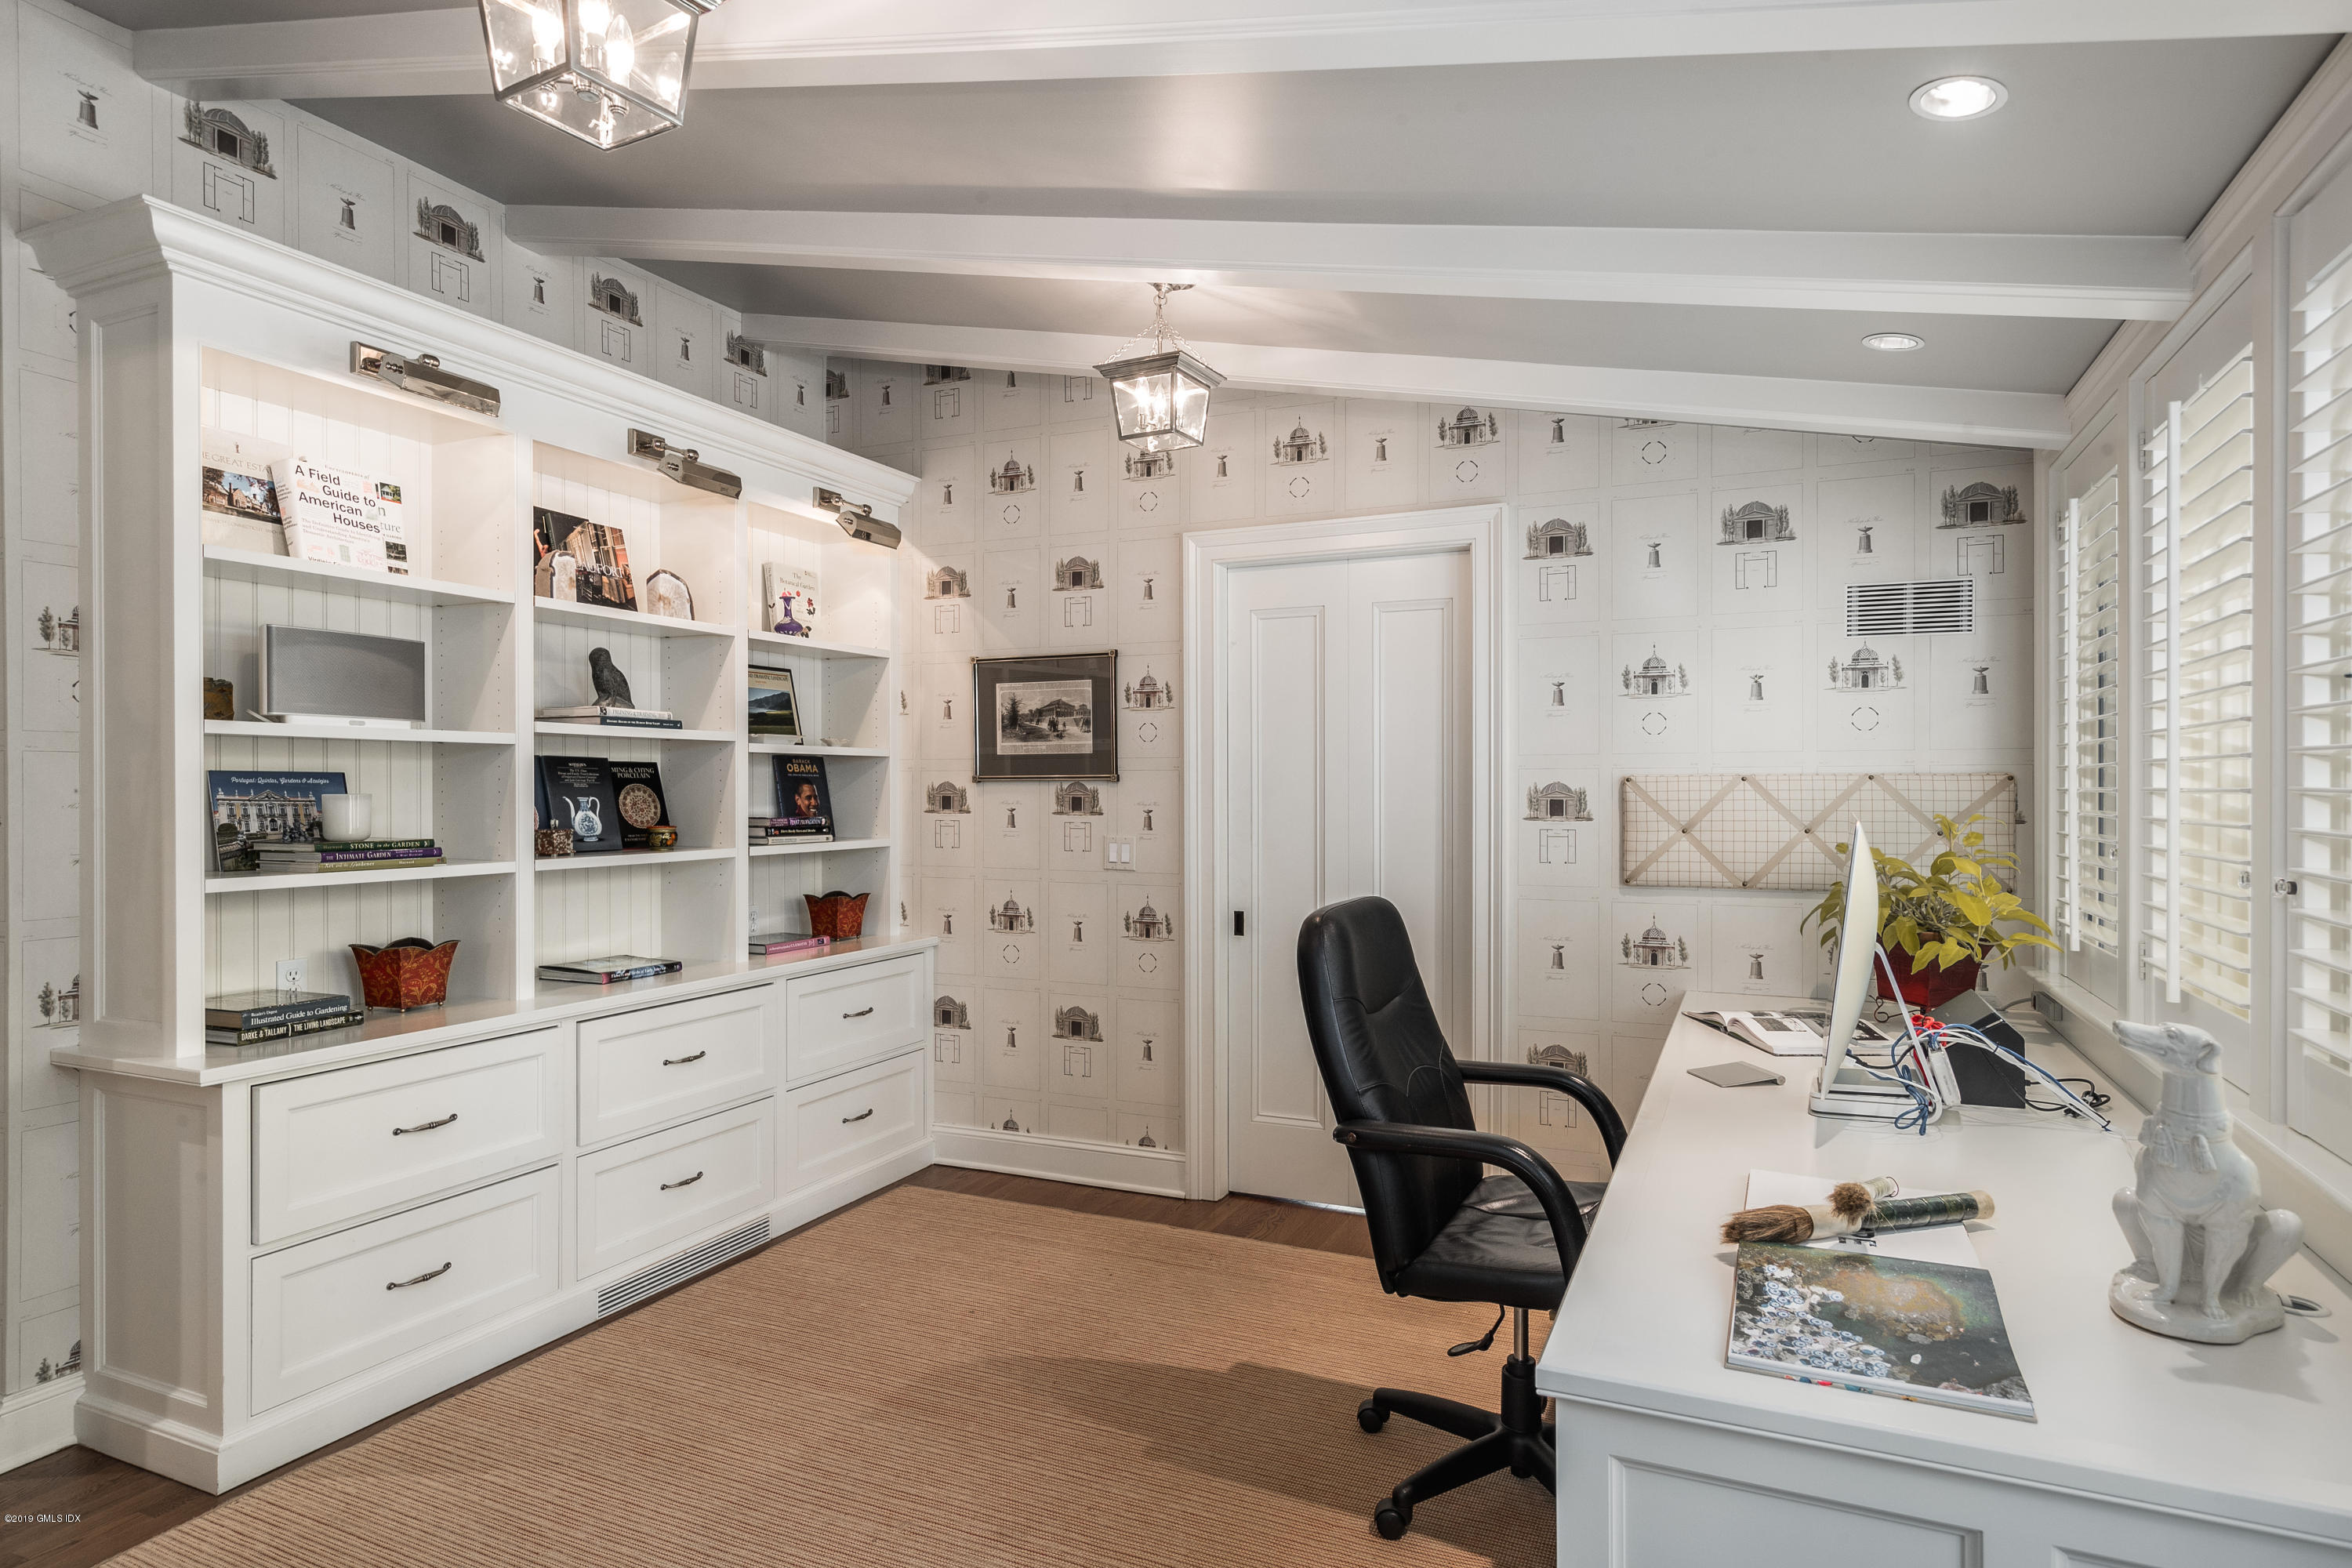 68 Doubling Road, Greenwich, CT 06830